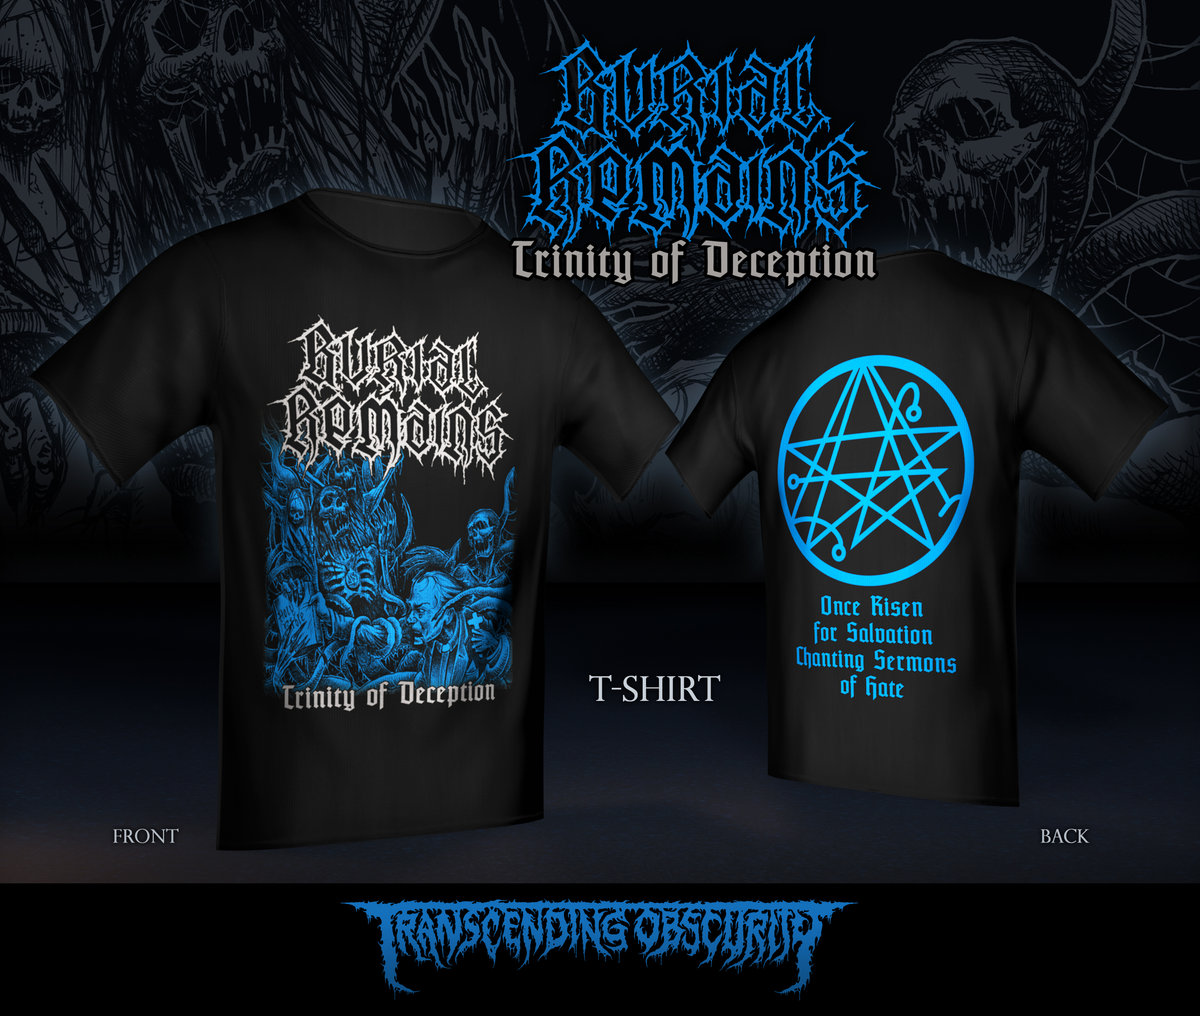 BURIAL REMAINS Double-sided print T-shirt (Limited to 30)